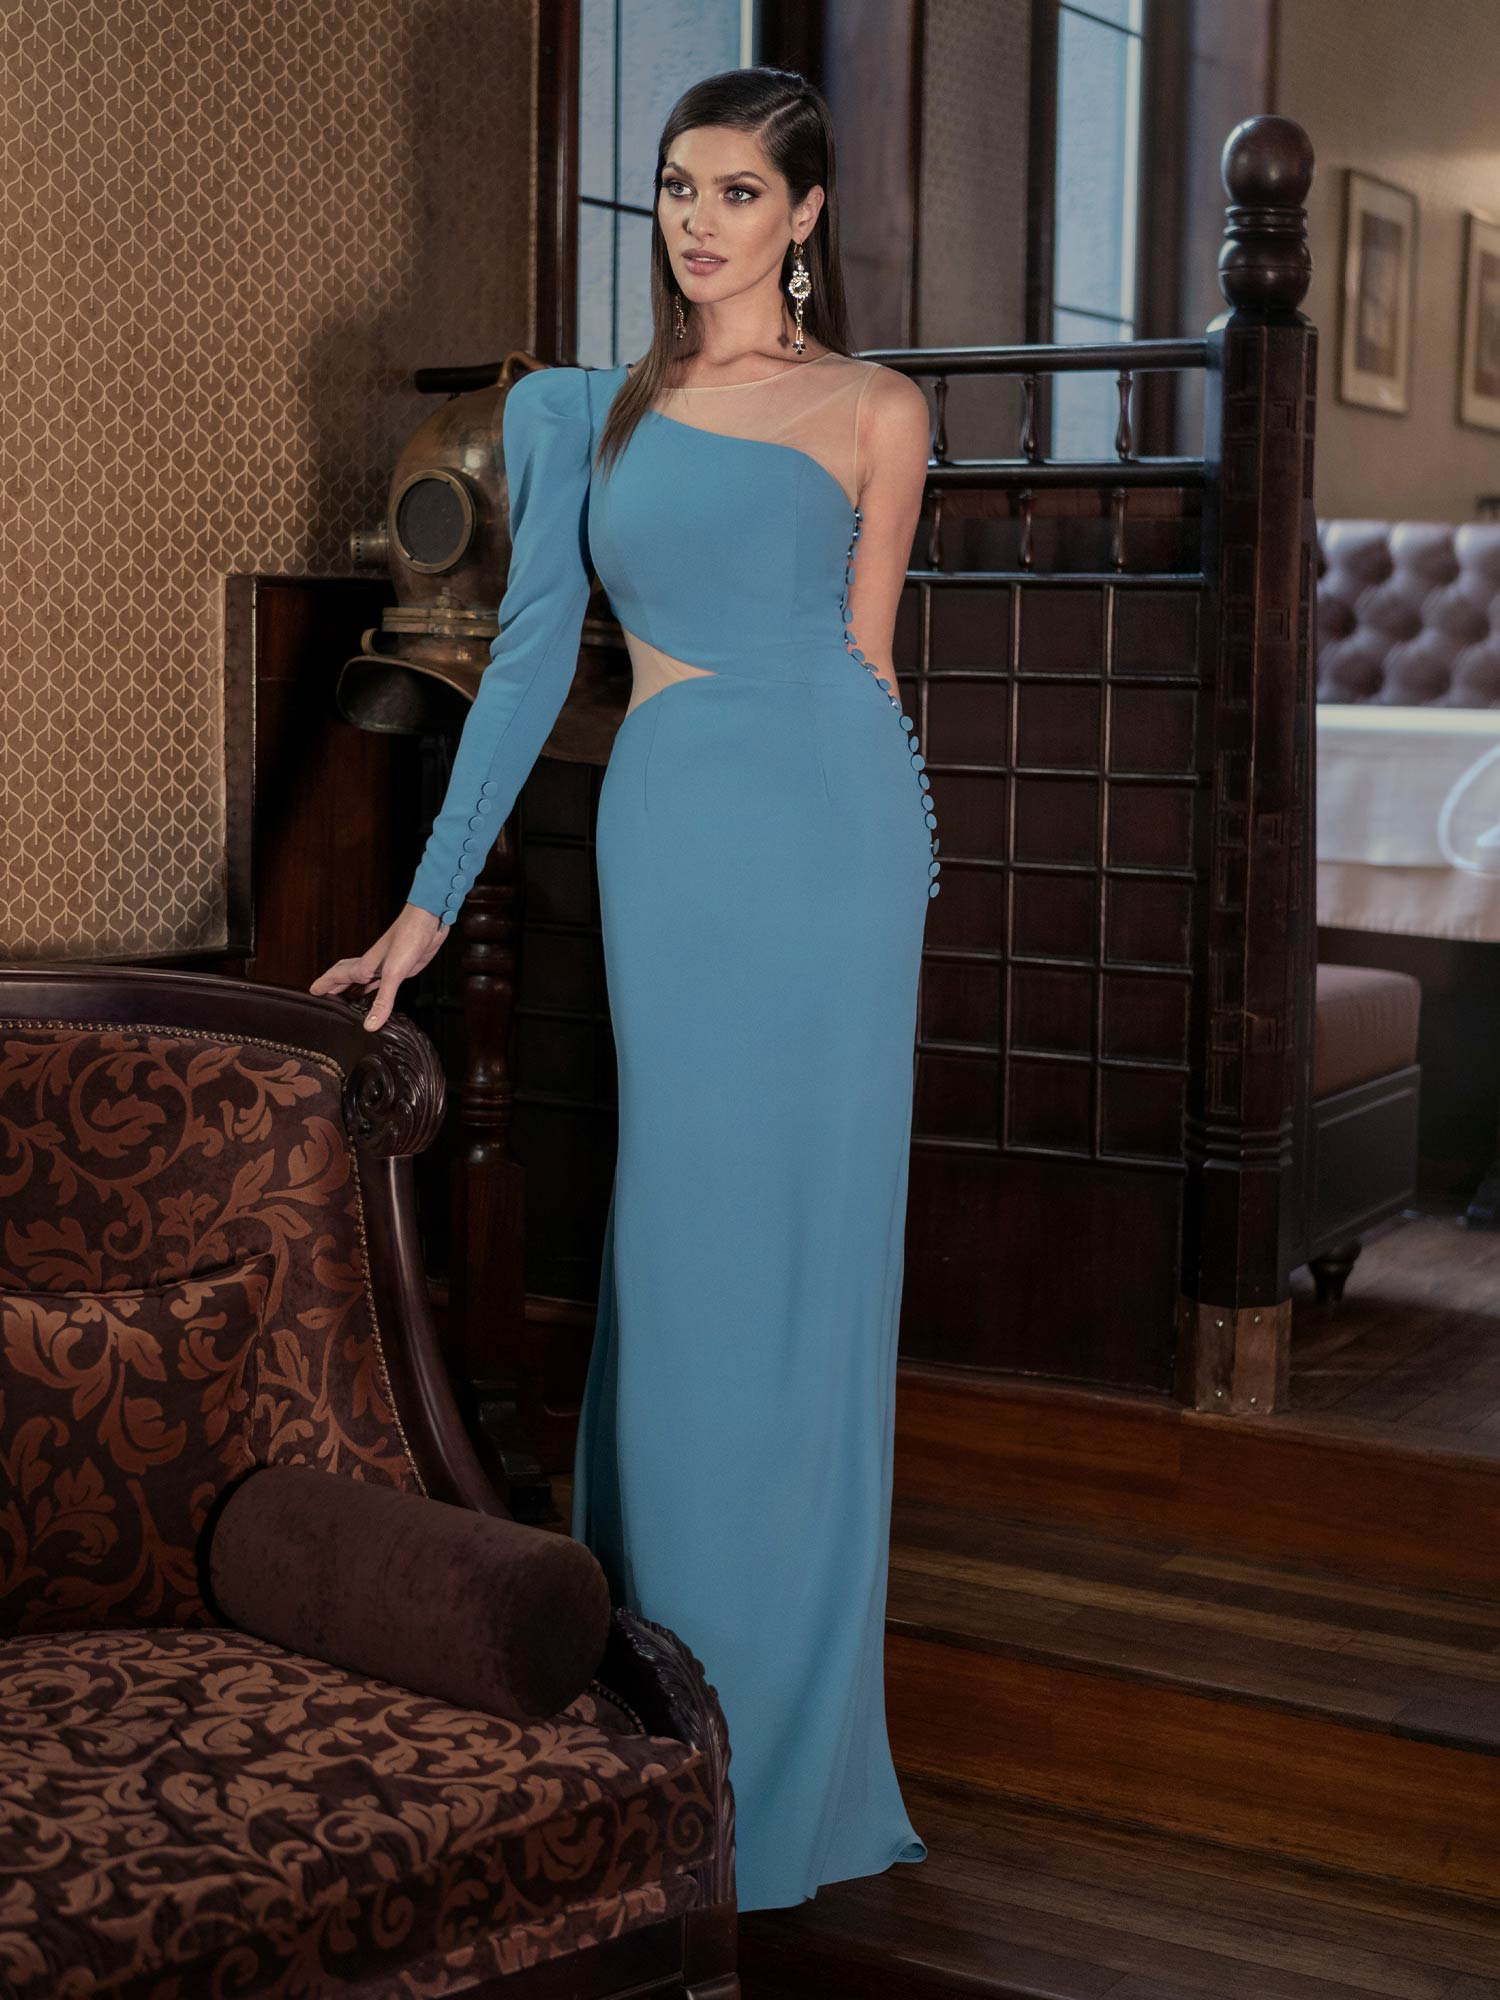 Style #627, available in pink, black, ivory, lilac, lilac-brown, red, dark blue, turquoise, cornflower, khaki